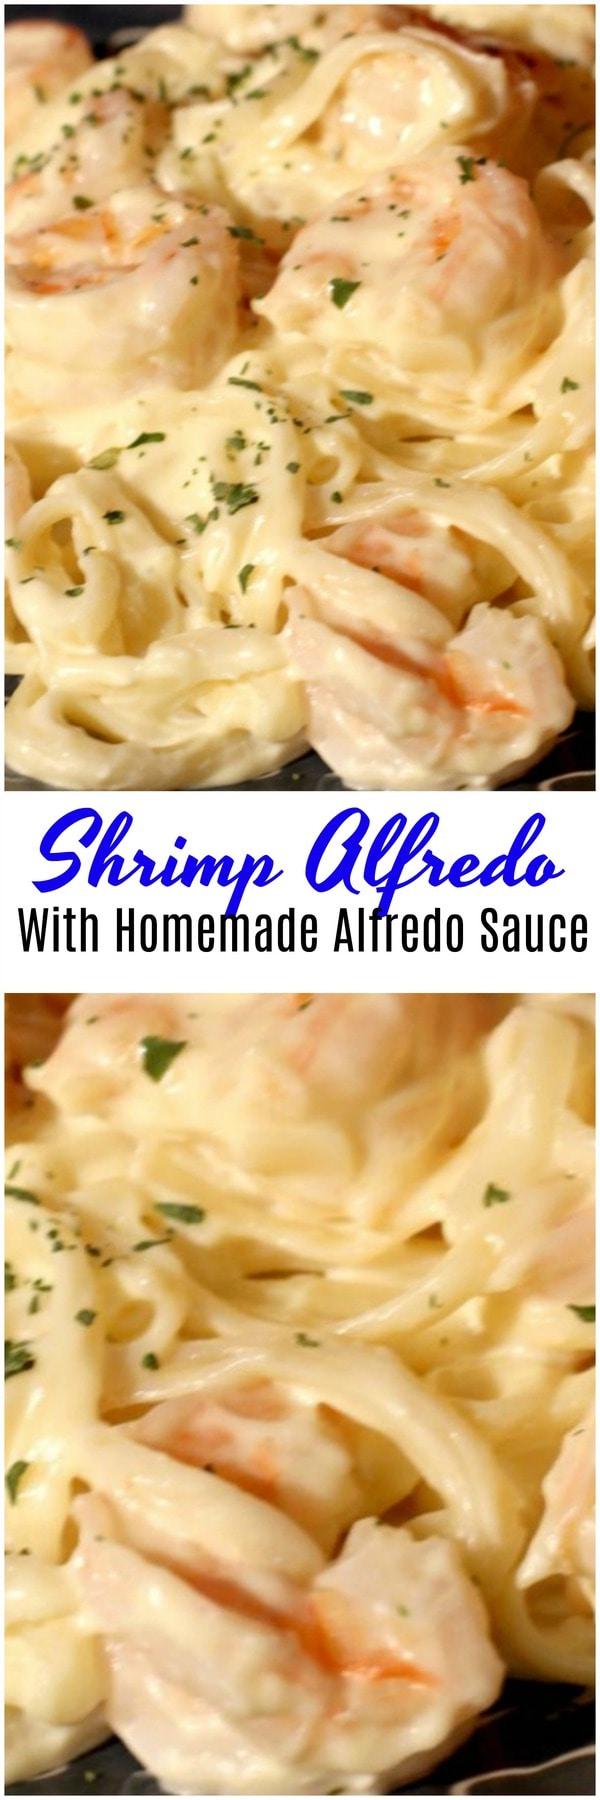 Shrimp Alfredo With Homemade Alfredo. Homemade alfredo sauce with shrimp. This copy cat olive garden Alfredo sauce is simple to make and tastes great.